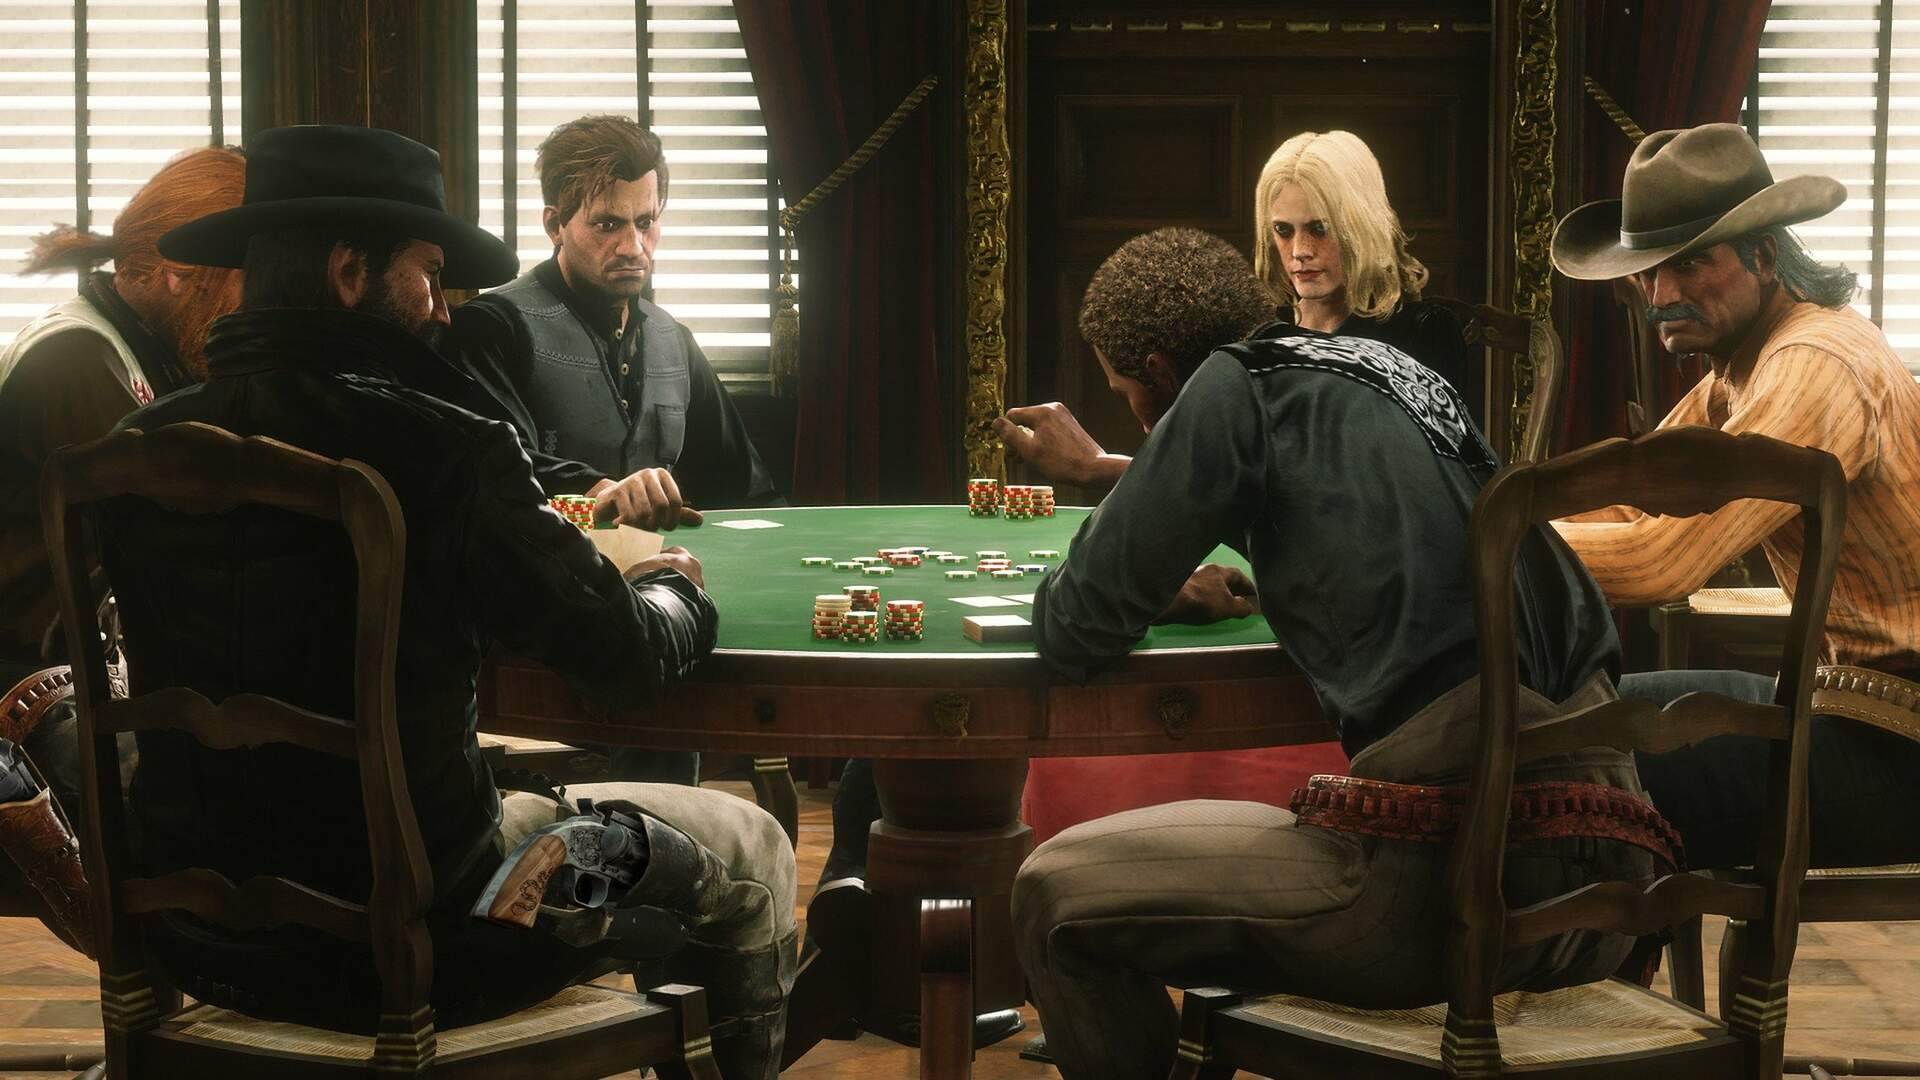 Some Red Dead Online Players Can't Play Poker Due To Regional Gambling Regulations